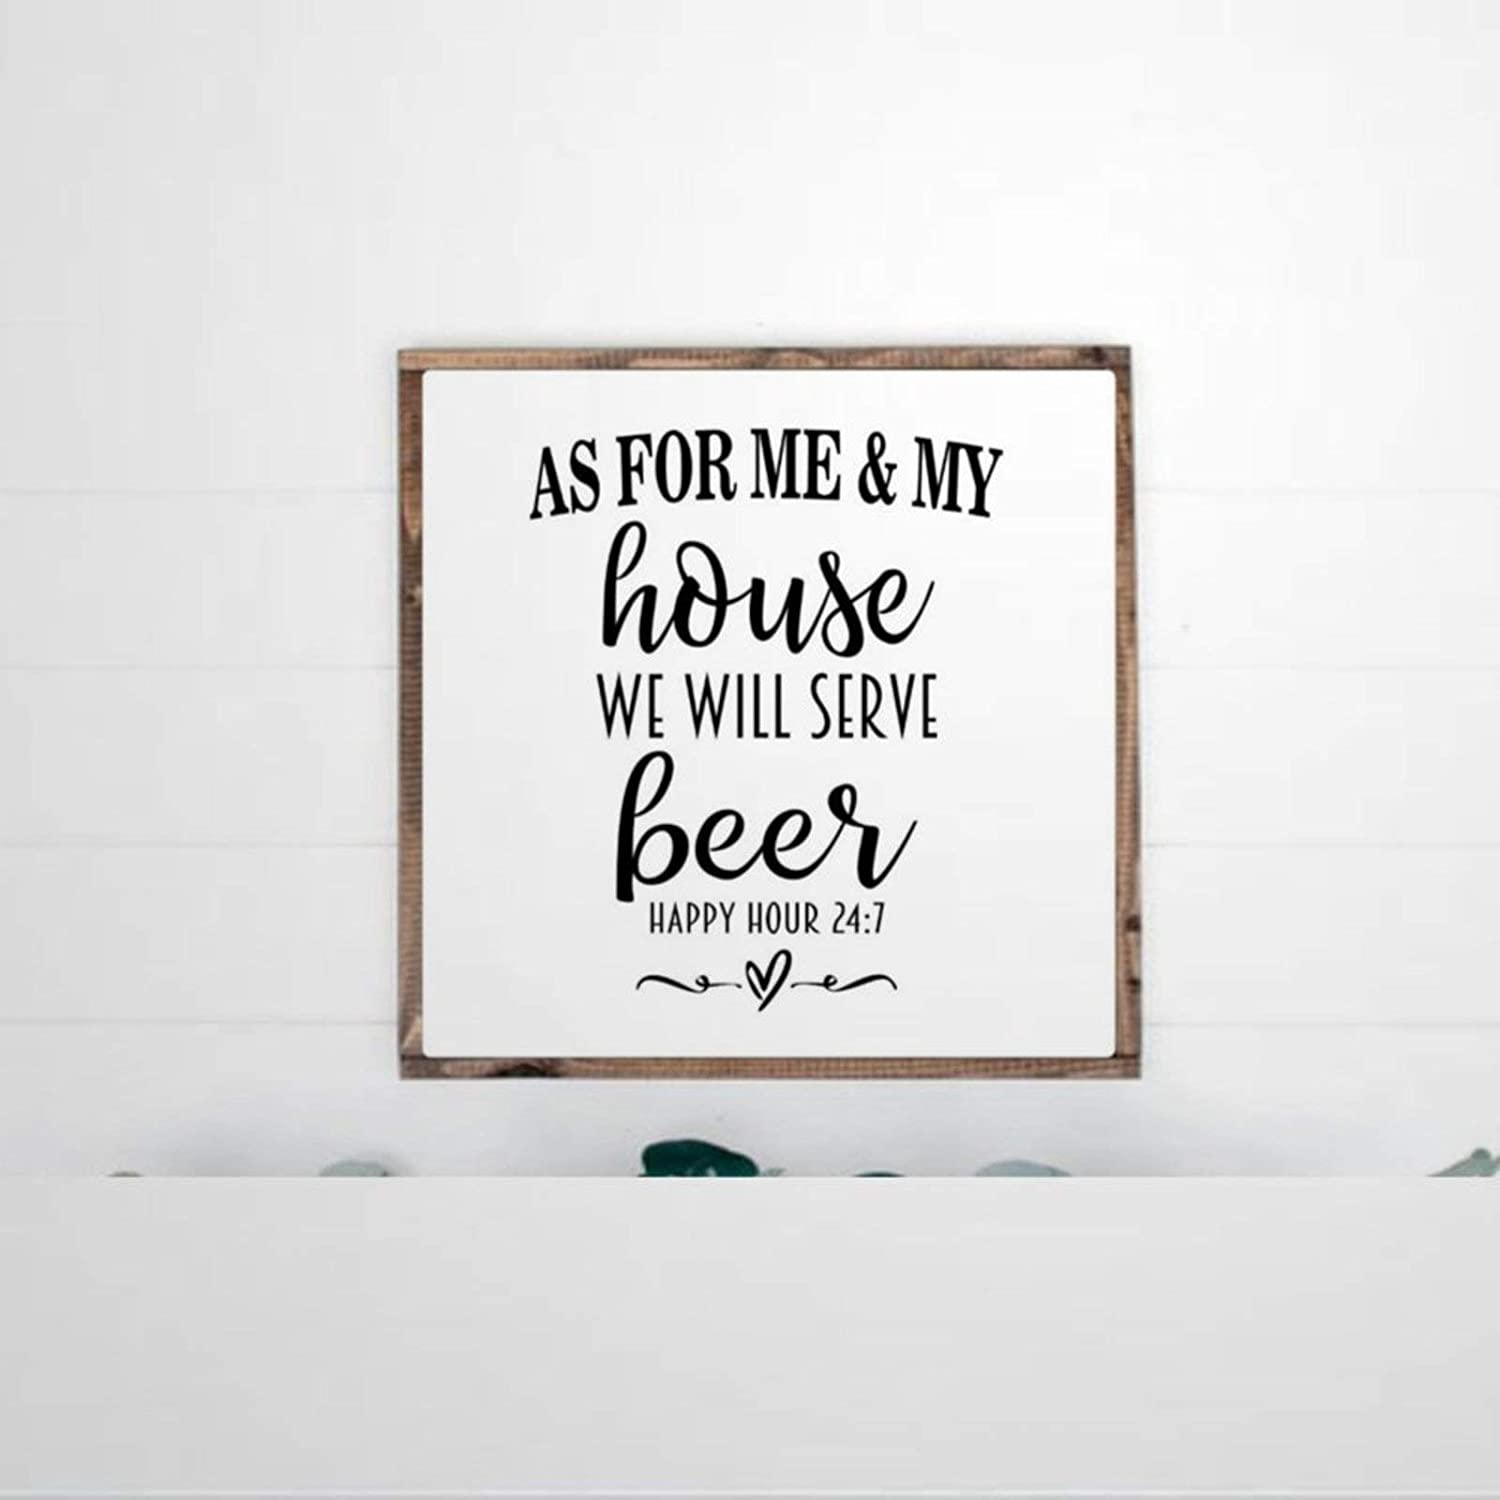 DONL9BAUER Framed Wooden Sign As for Me and My House We Will Serve B_eer Wall Hanging B_eer Lover Farmhouse Home Decor Wall Art for Living Room